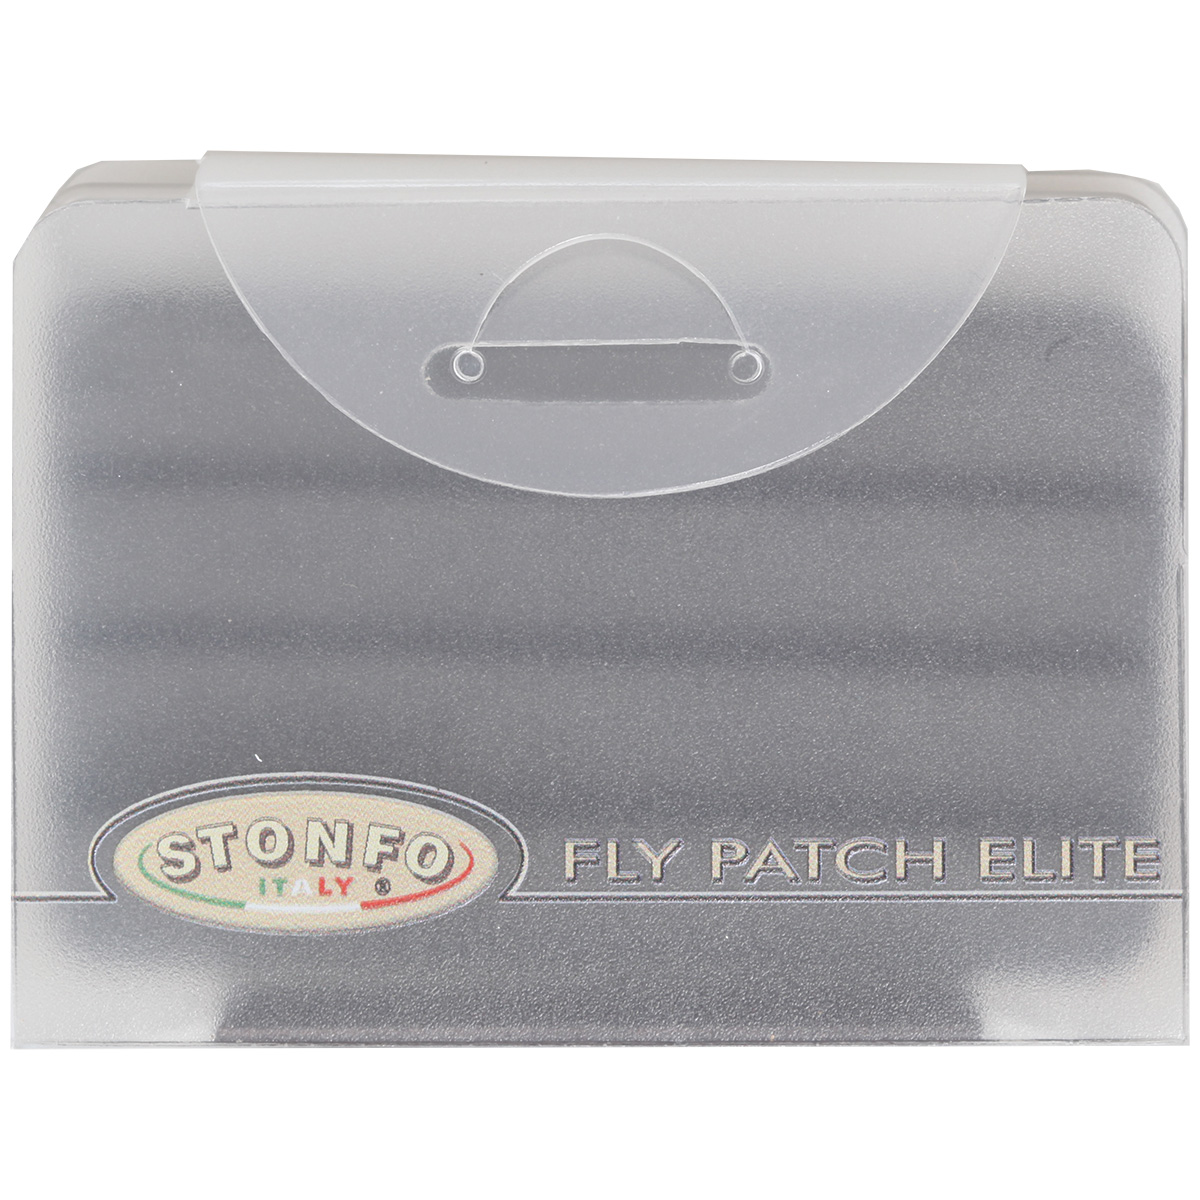 Stonfo Fly Patch Elite